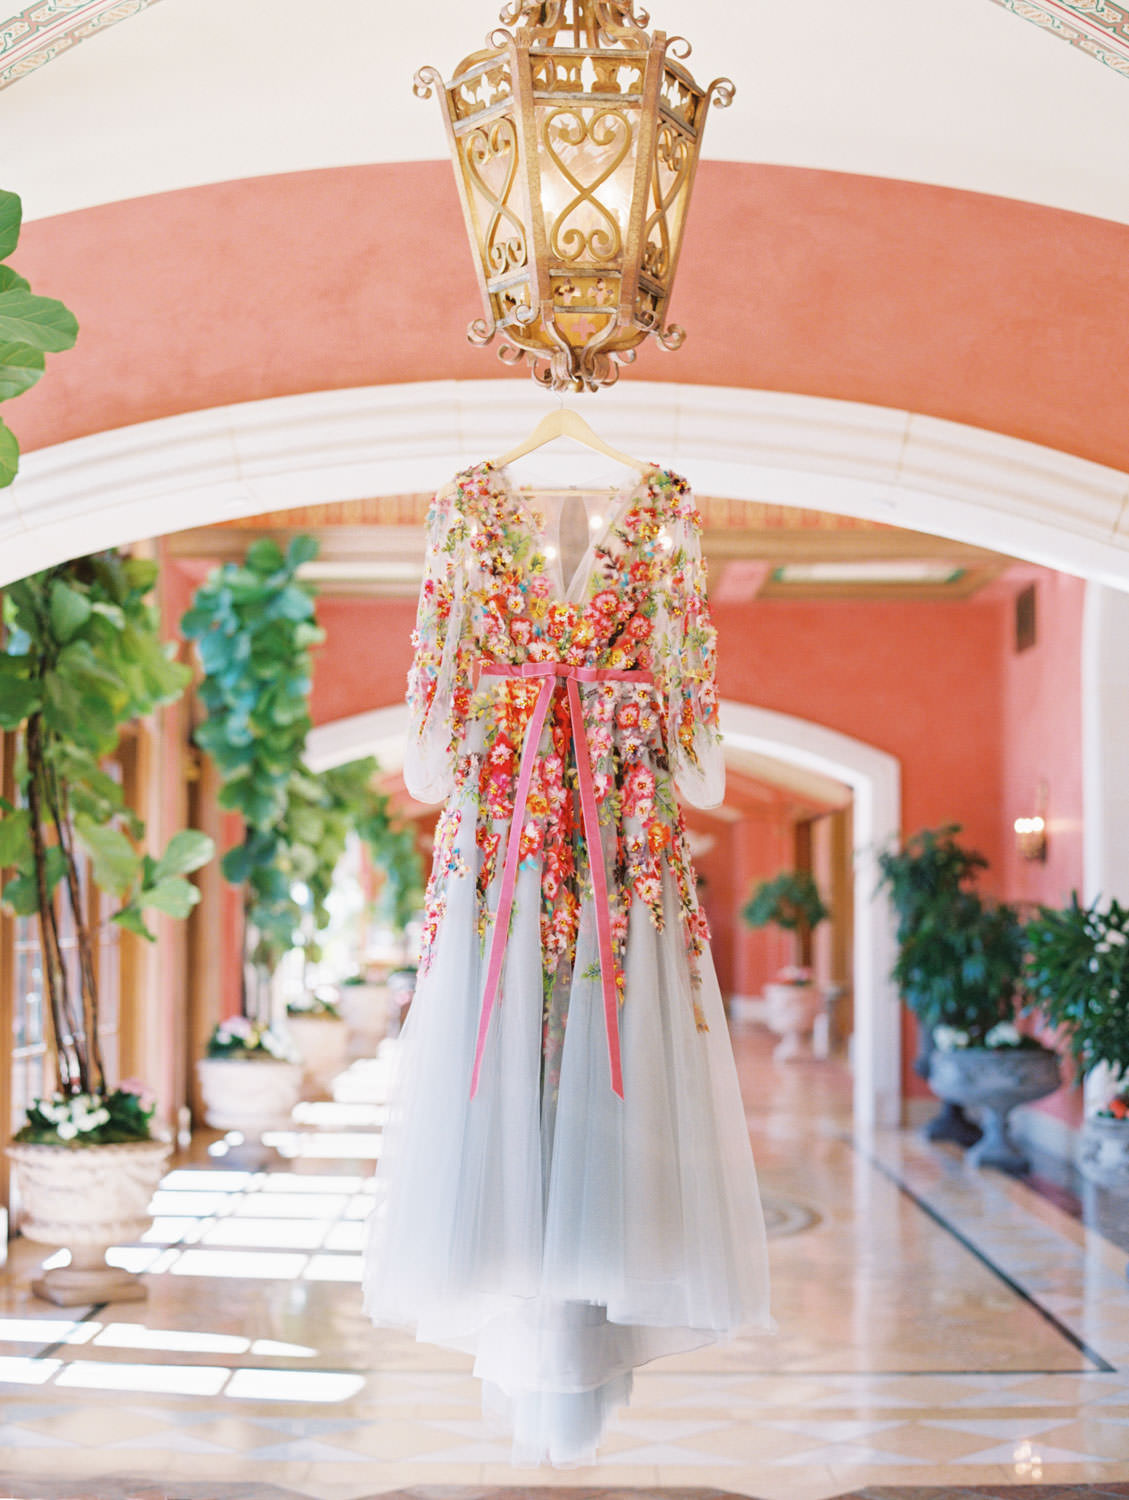 Marchesa blue and pink floral long sleeve couture gown with floral appliques. Fairmont Grand del Mar wedding published on Martha Stewart Weddings